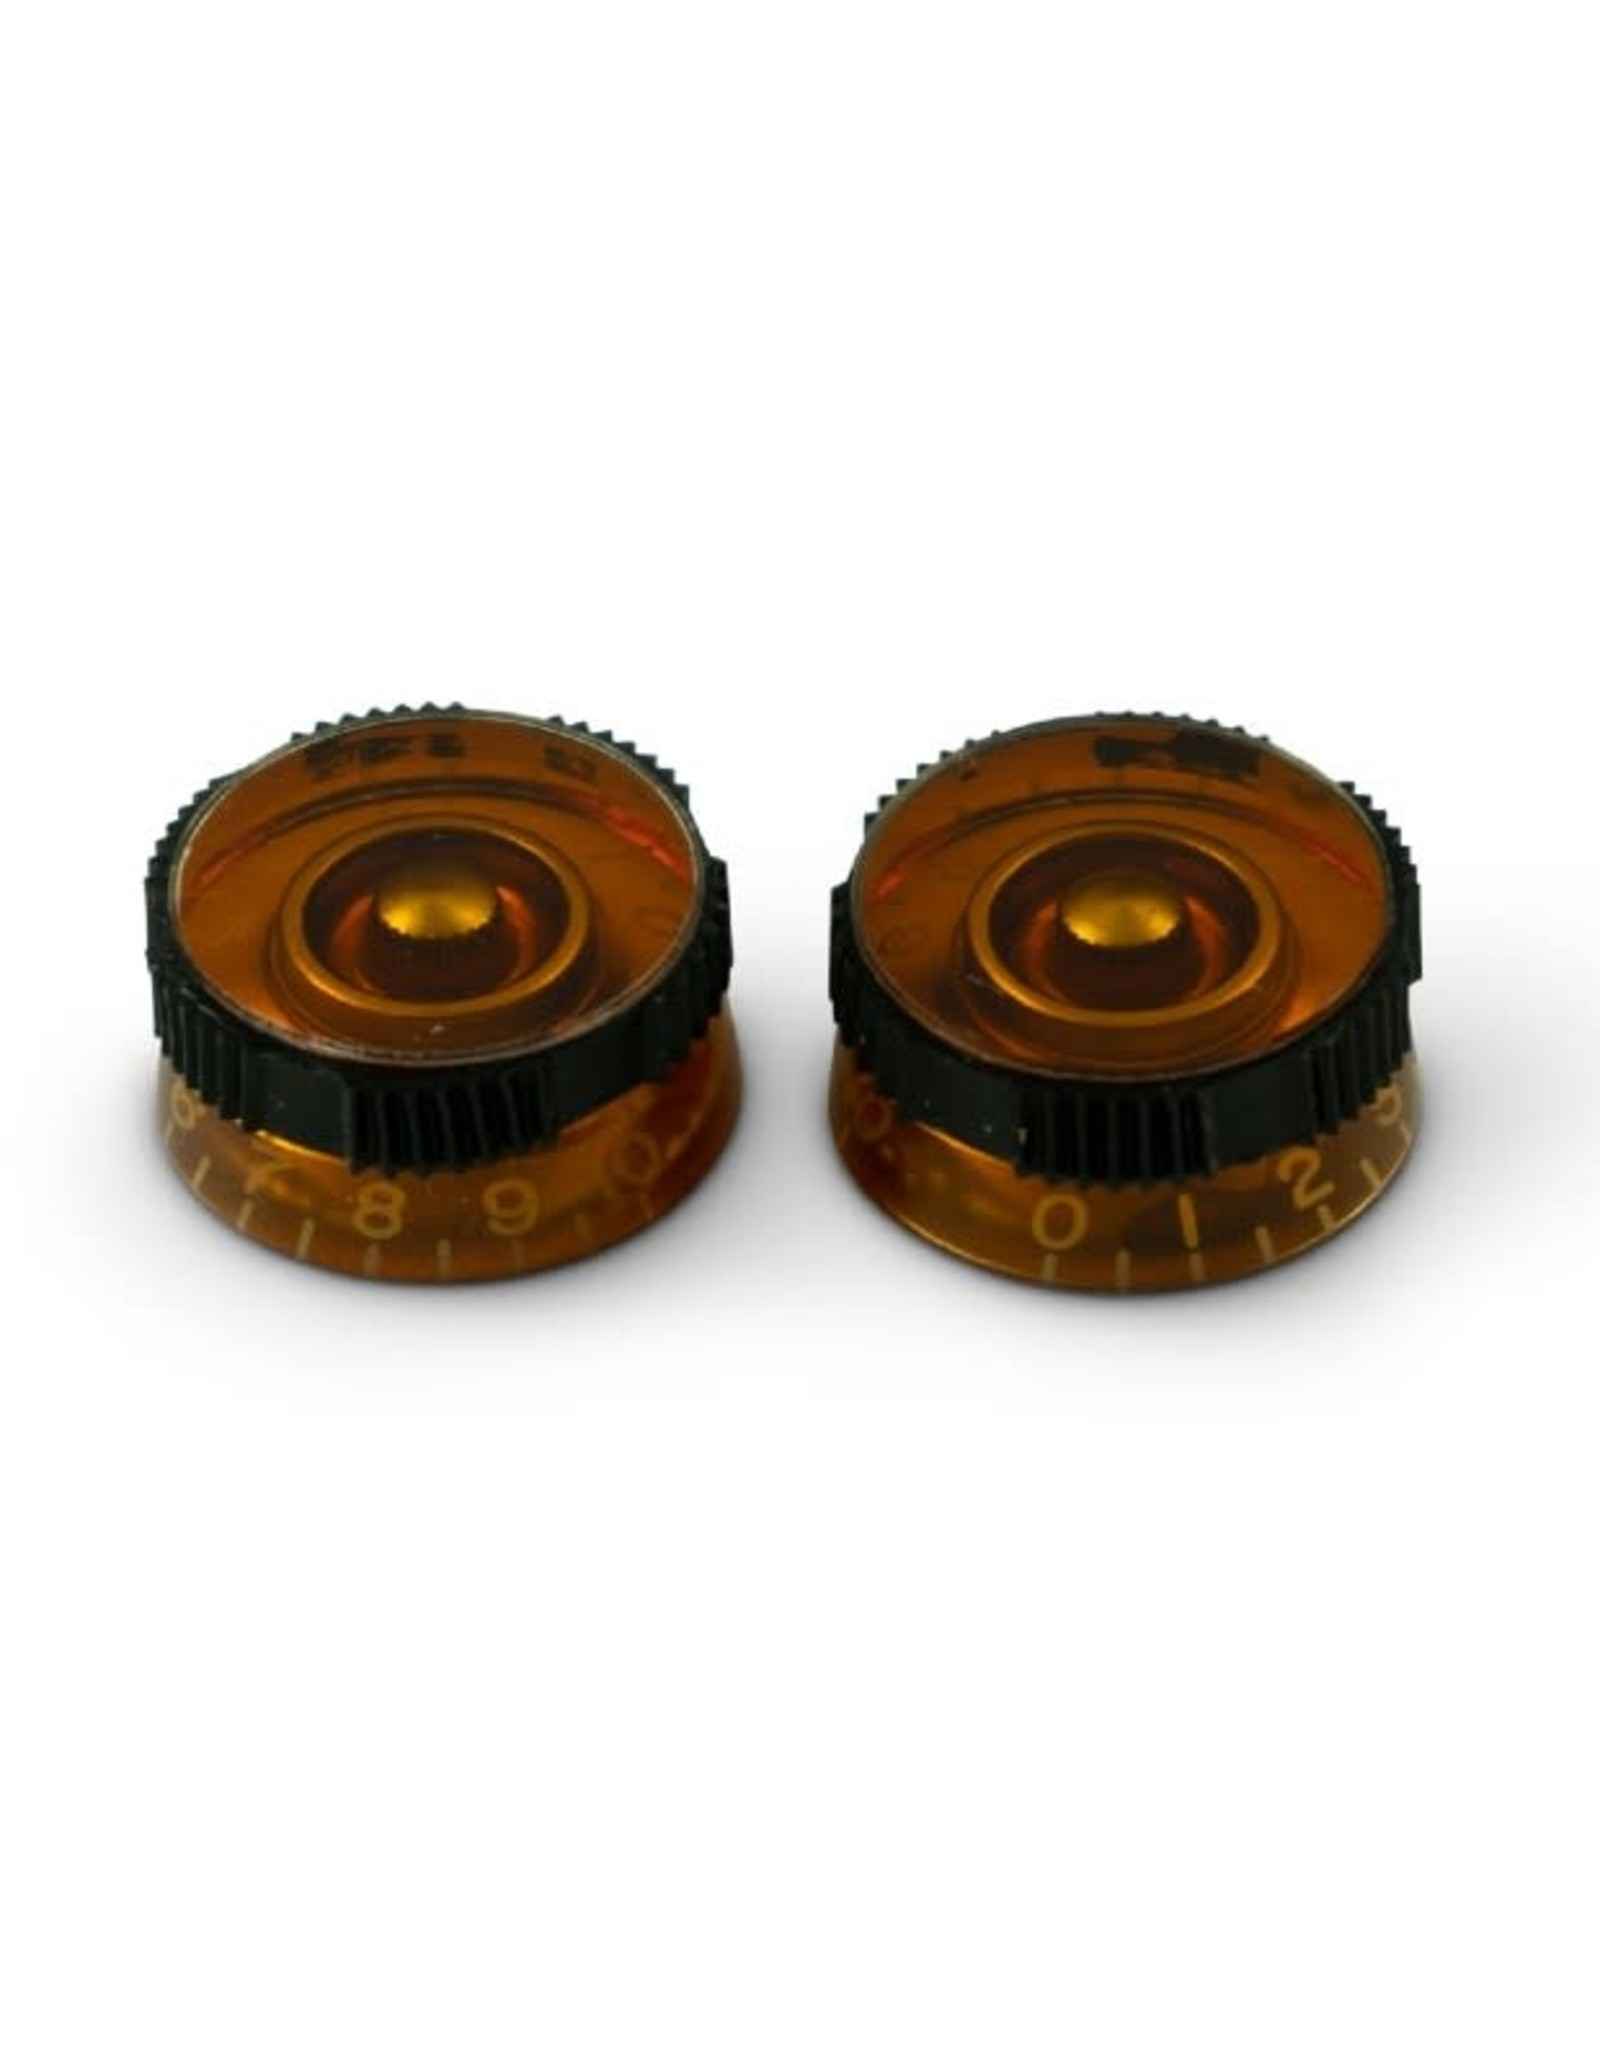 WD Music Products WD Non-Slip Speed Knob Set Of 2 Amber